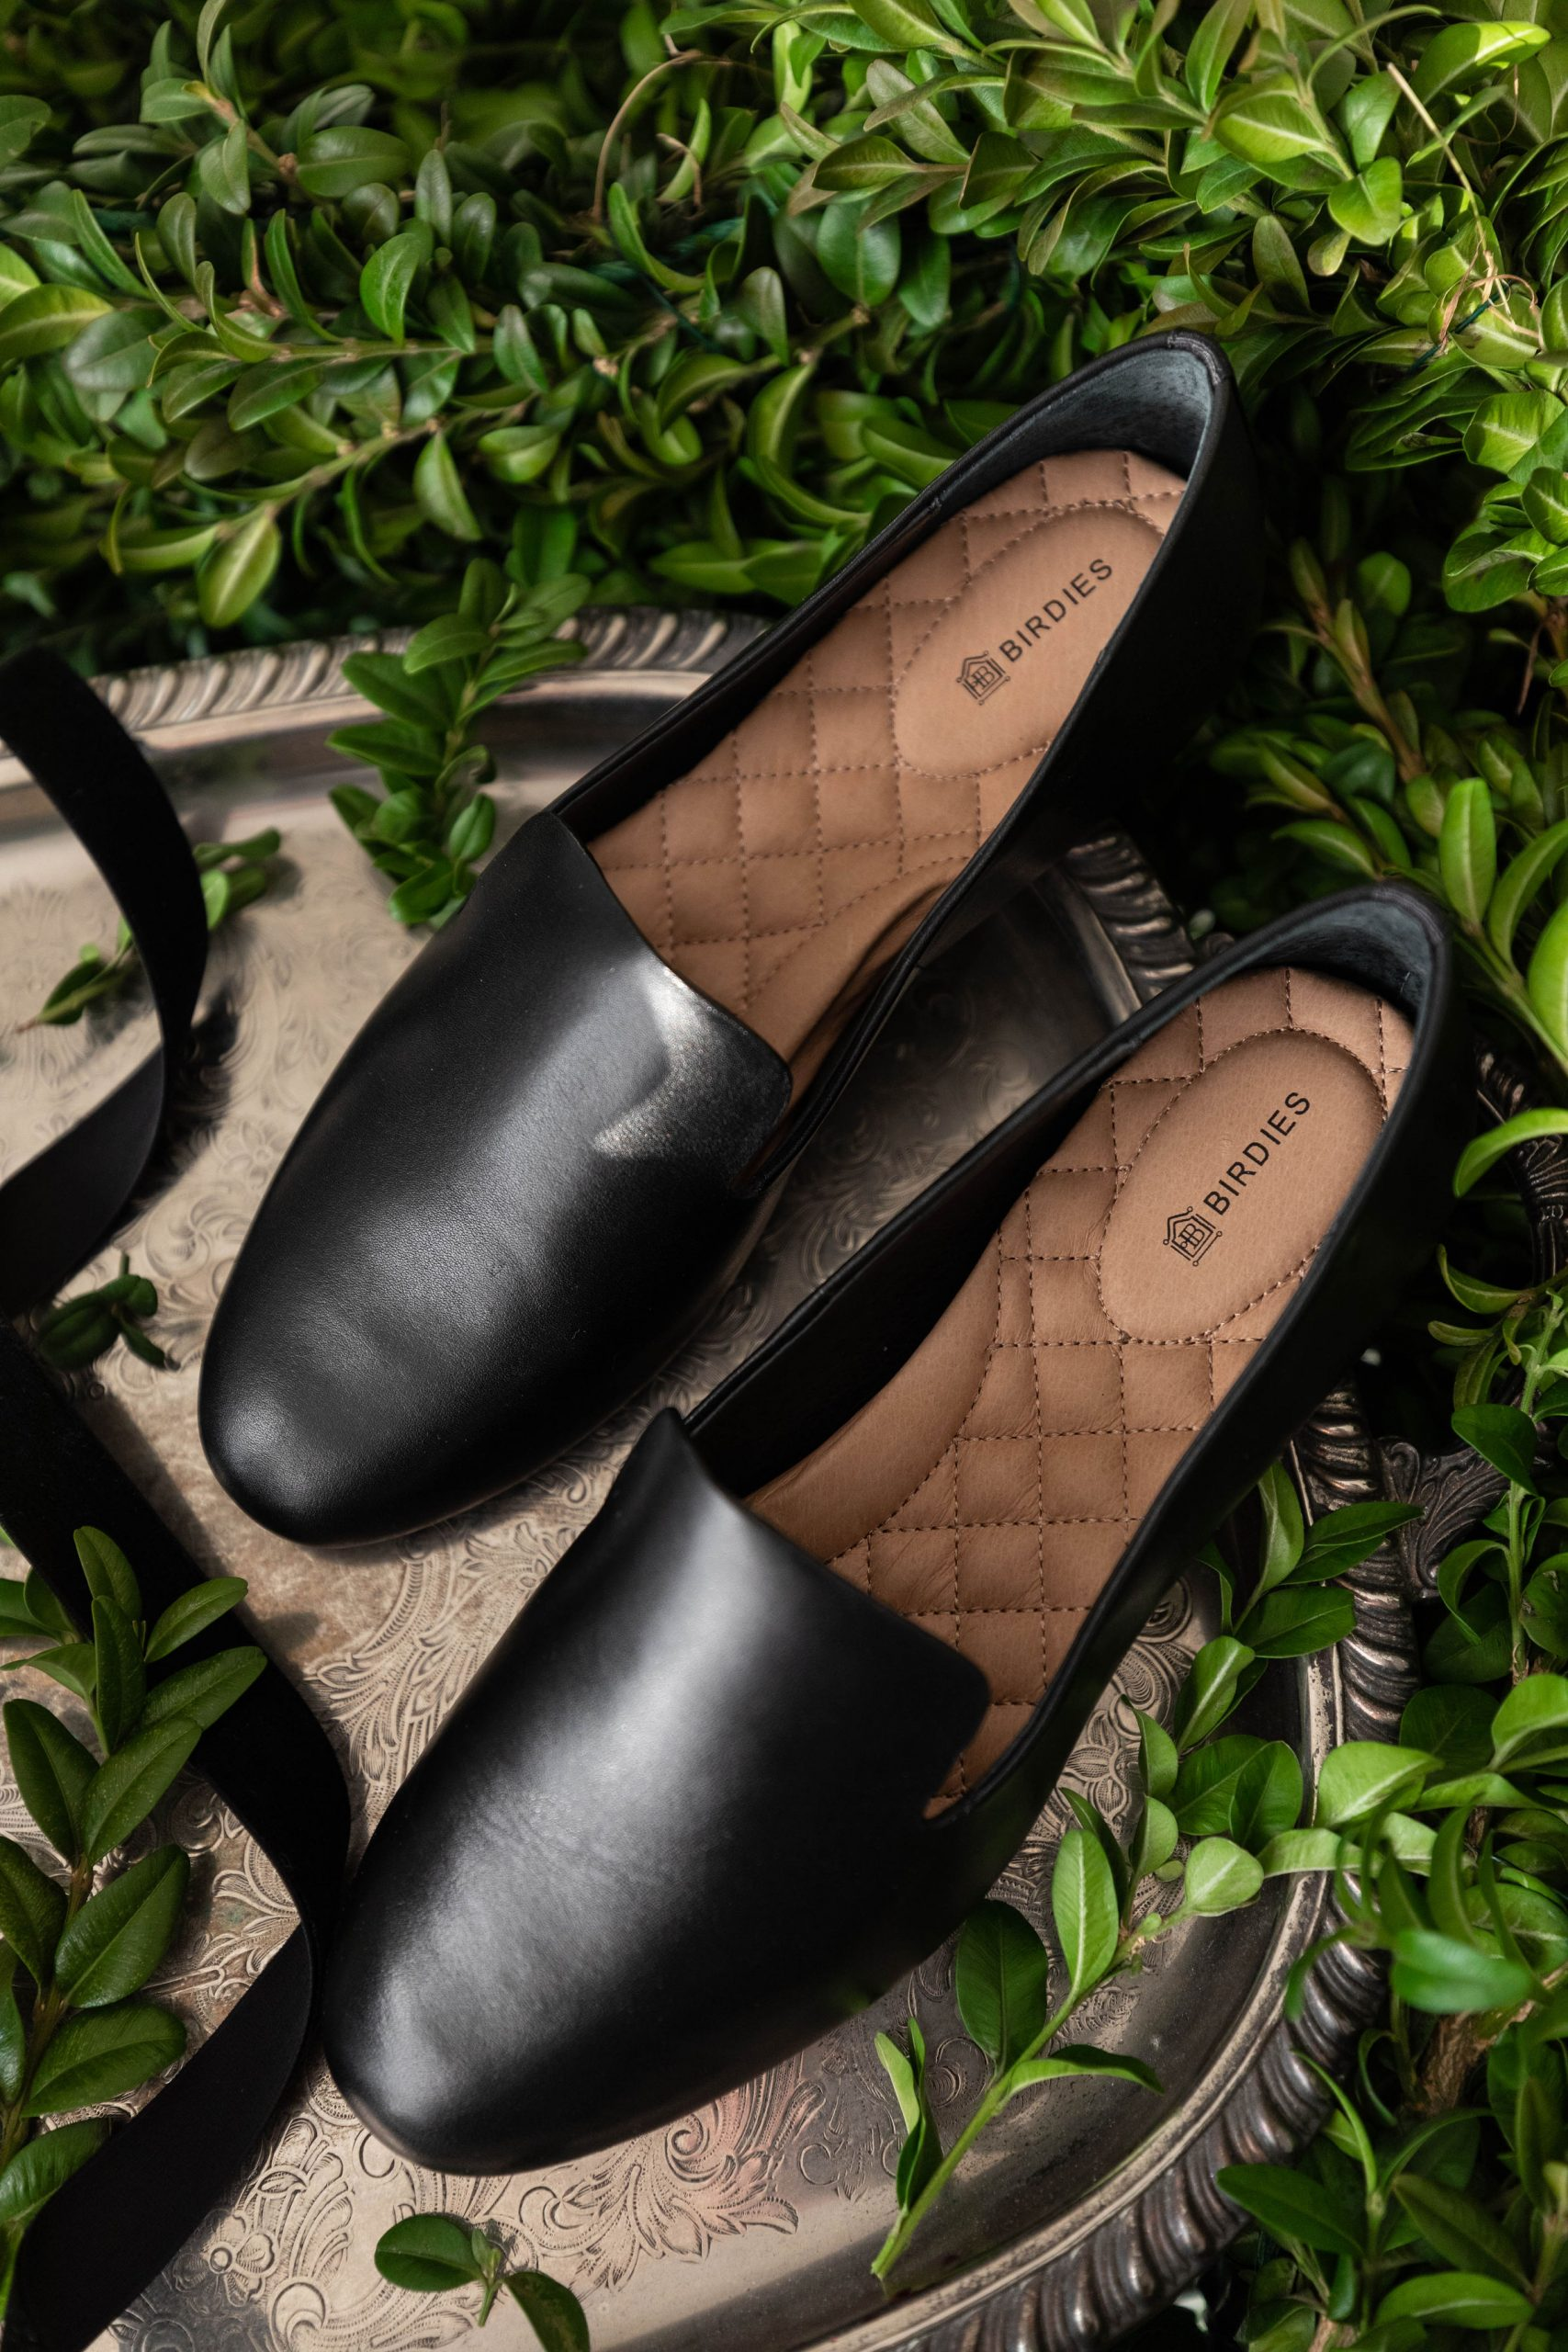 Birdies Leather Starling Loafer Review Styled by Annie Fairfax